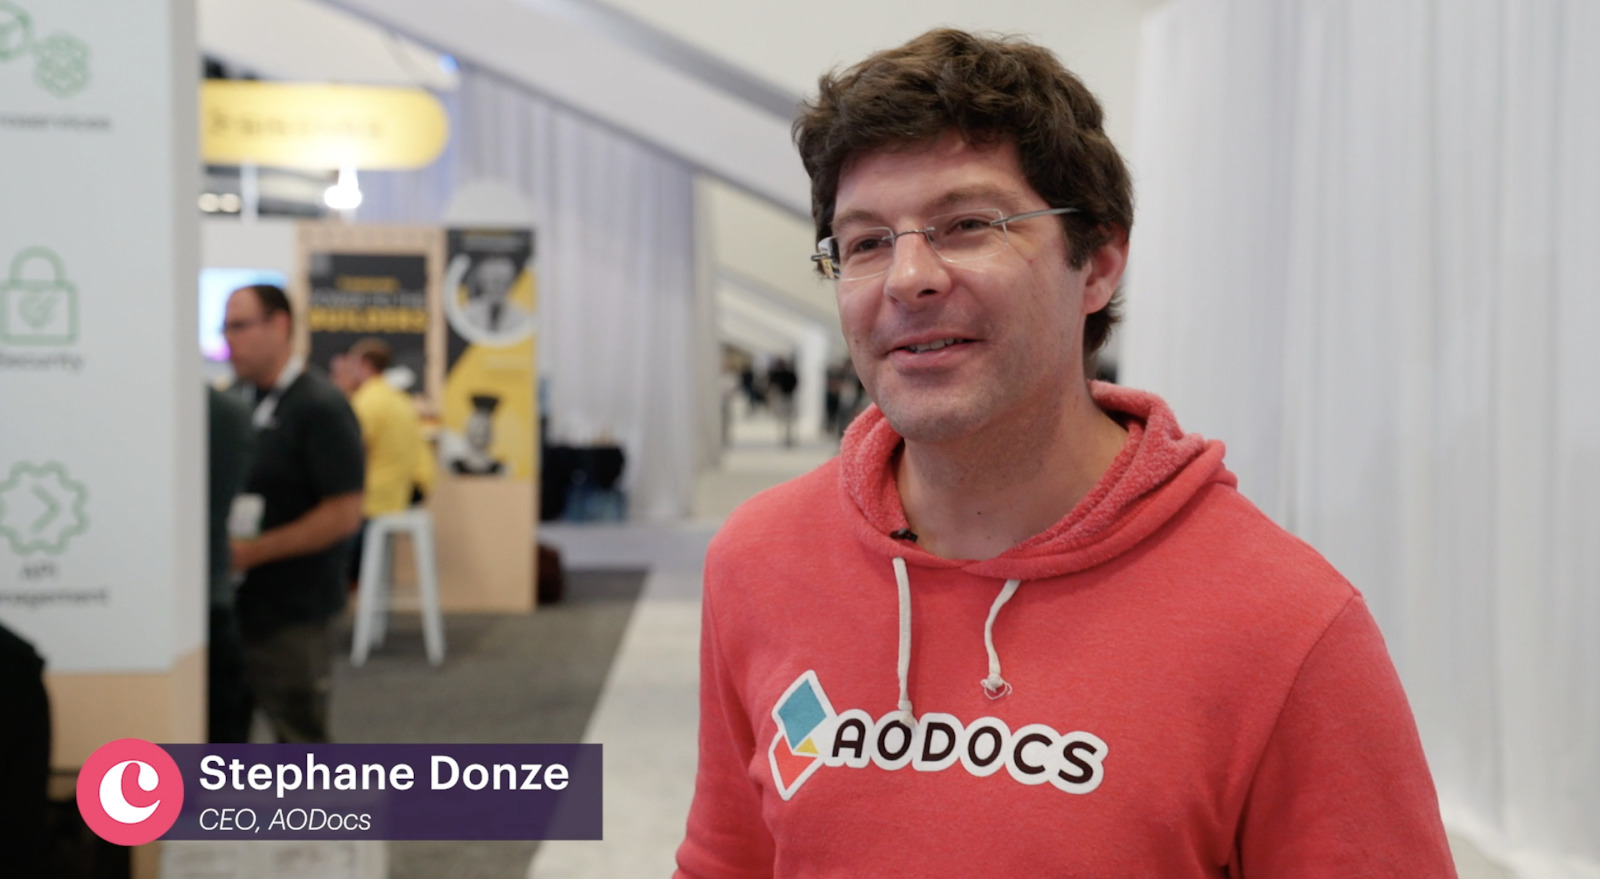 stephane from aodocs